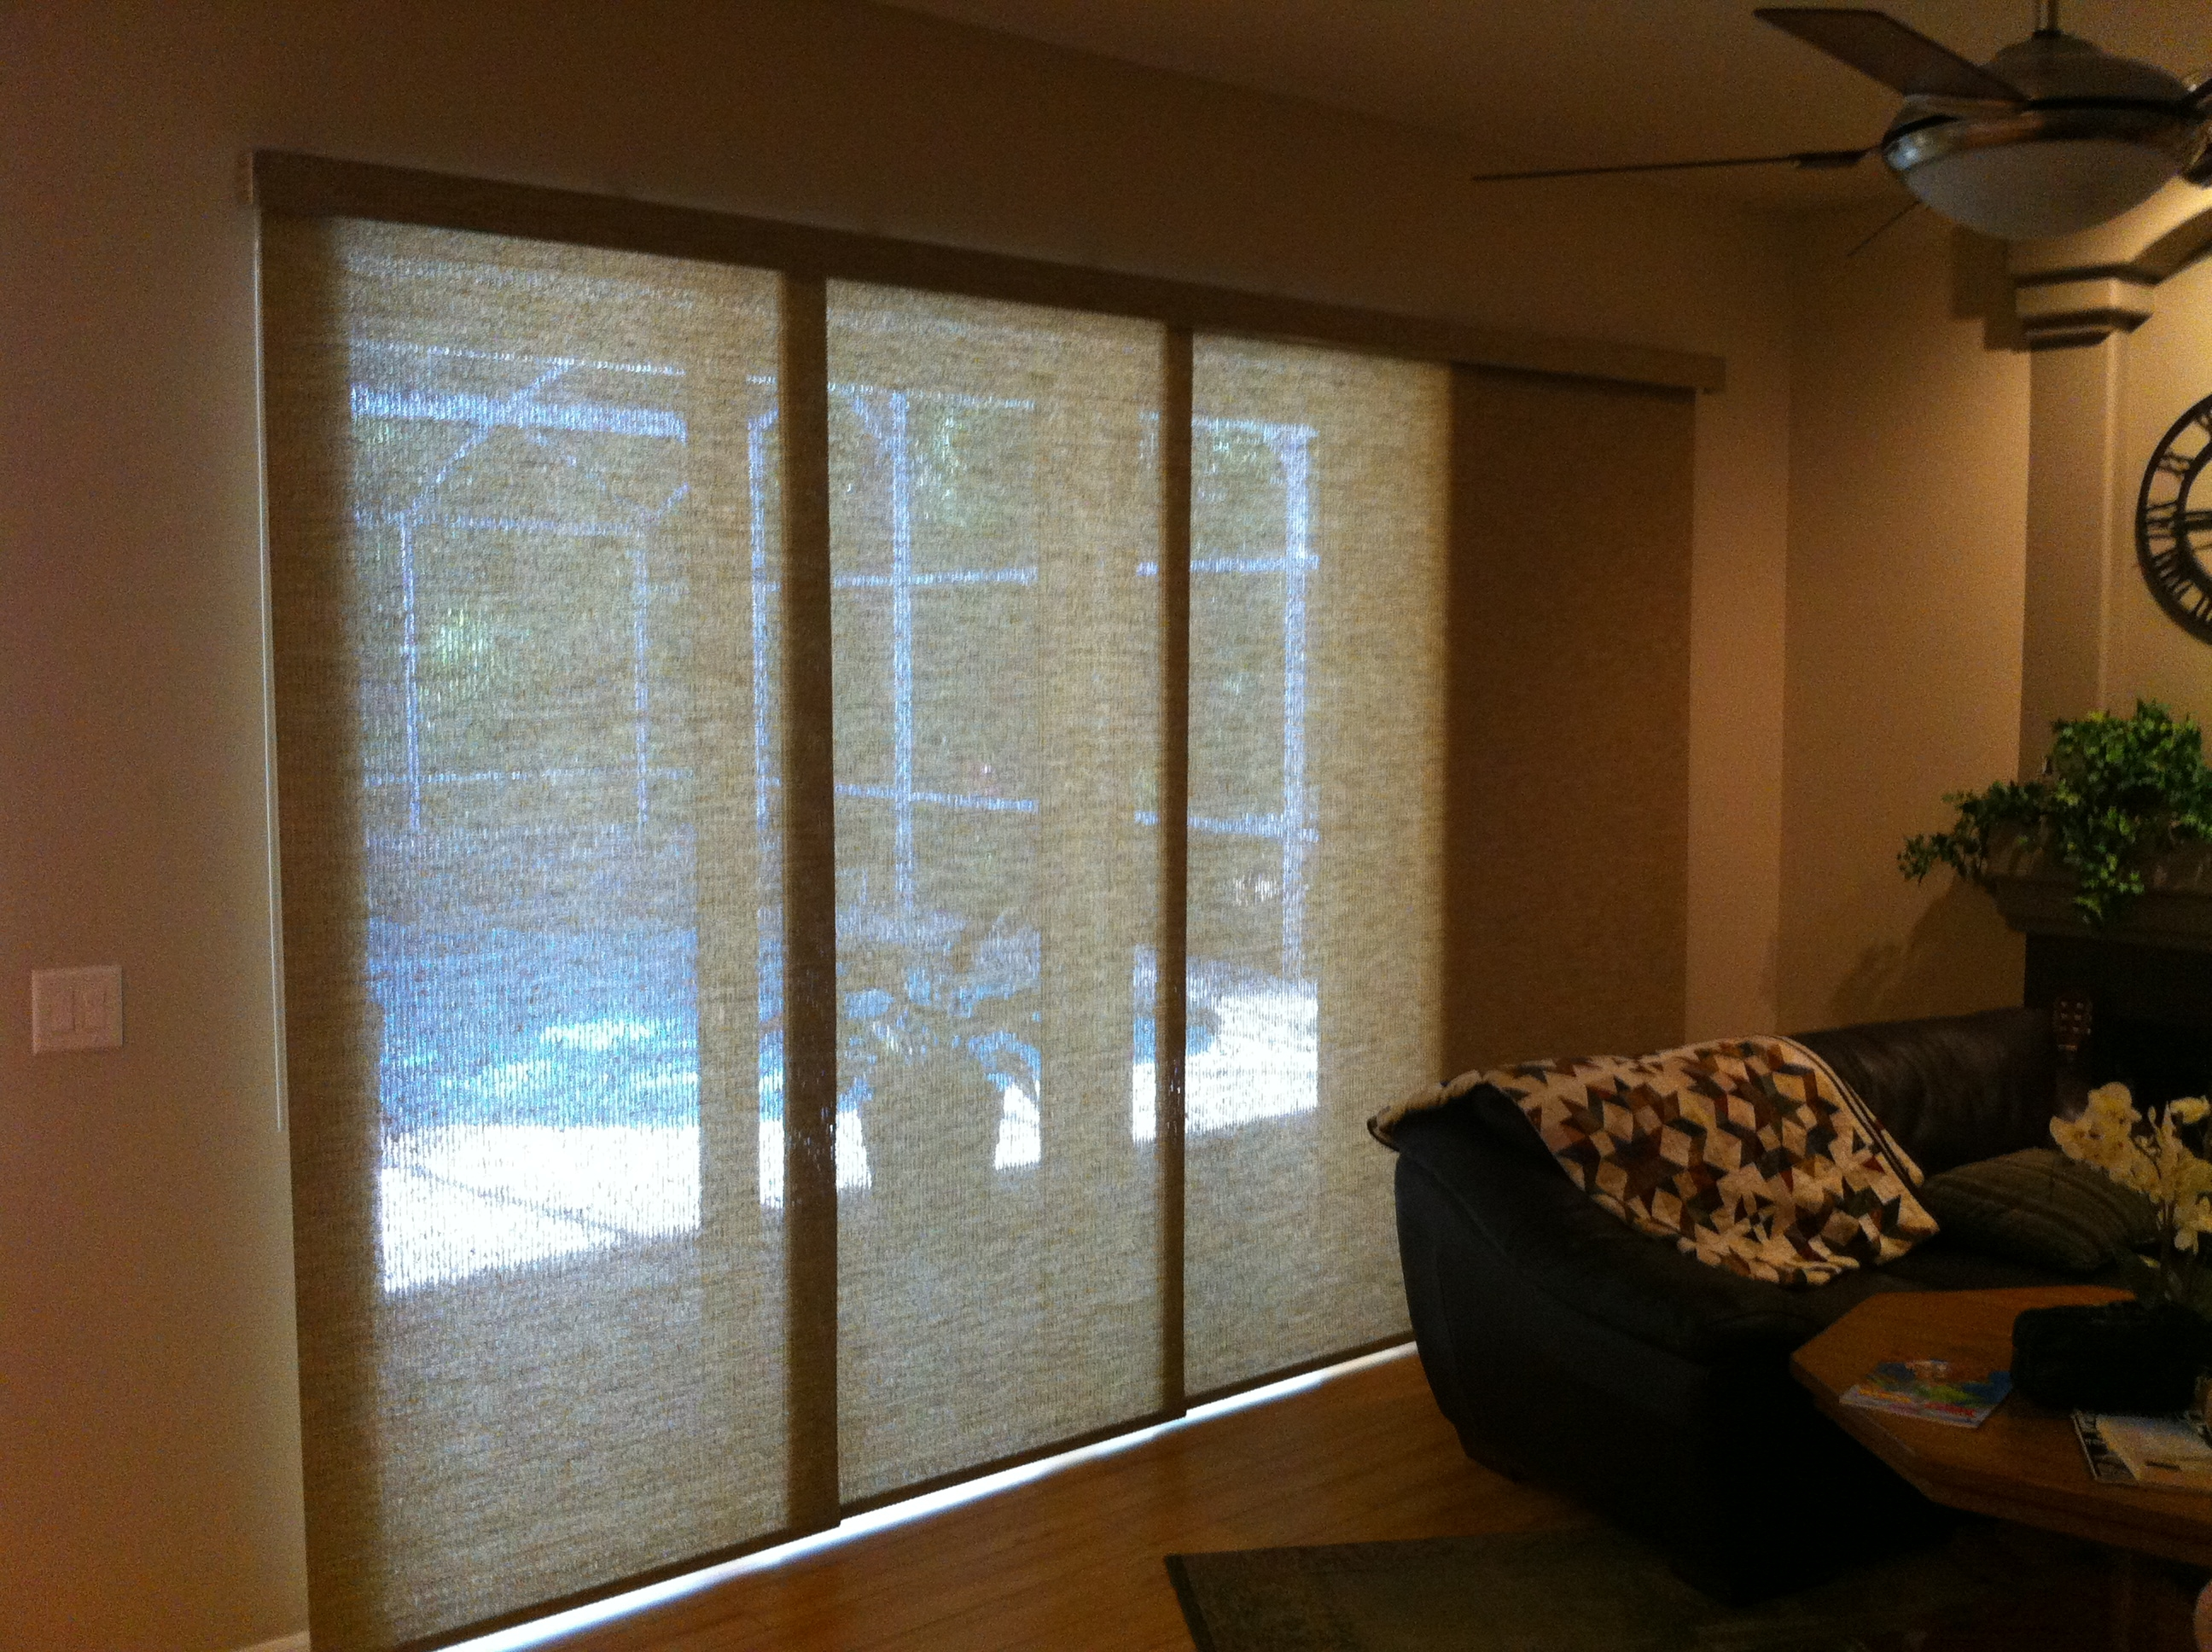 3 panel sliding patio door with blinds2592 x